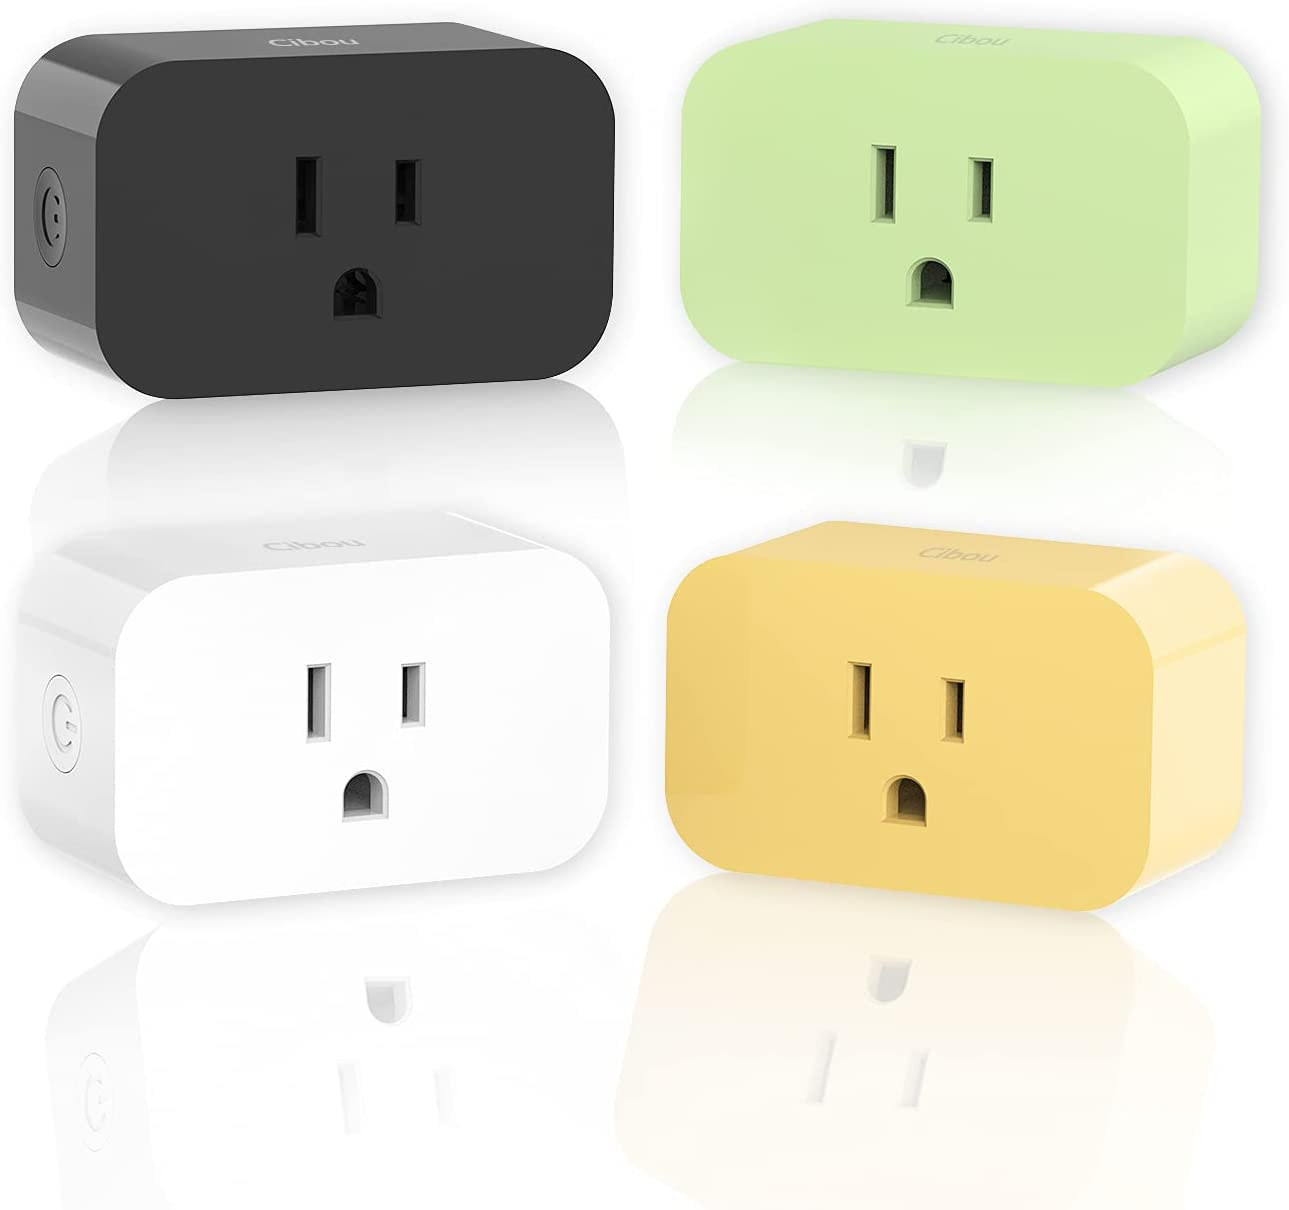 Cibou Smart Plug Mini 15A 4Pack H amazon Alexa Work 2021 spring and Max 74% OFF summer new with Google